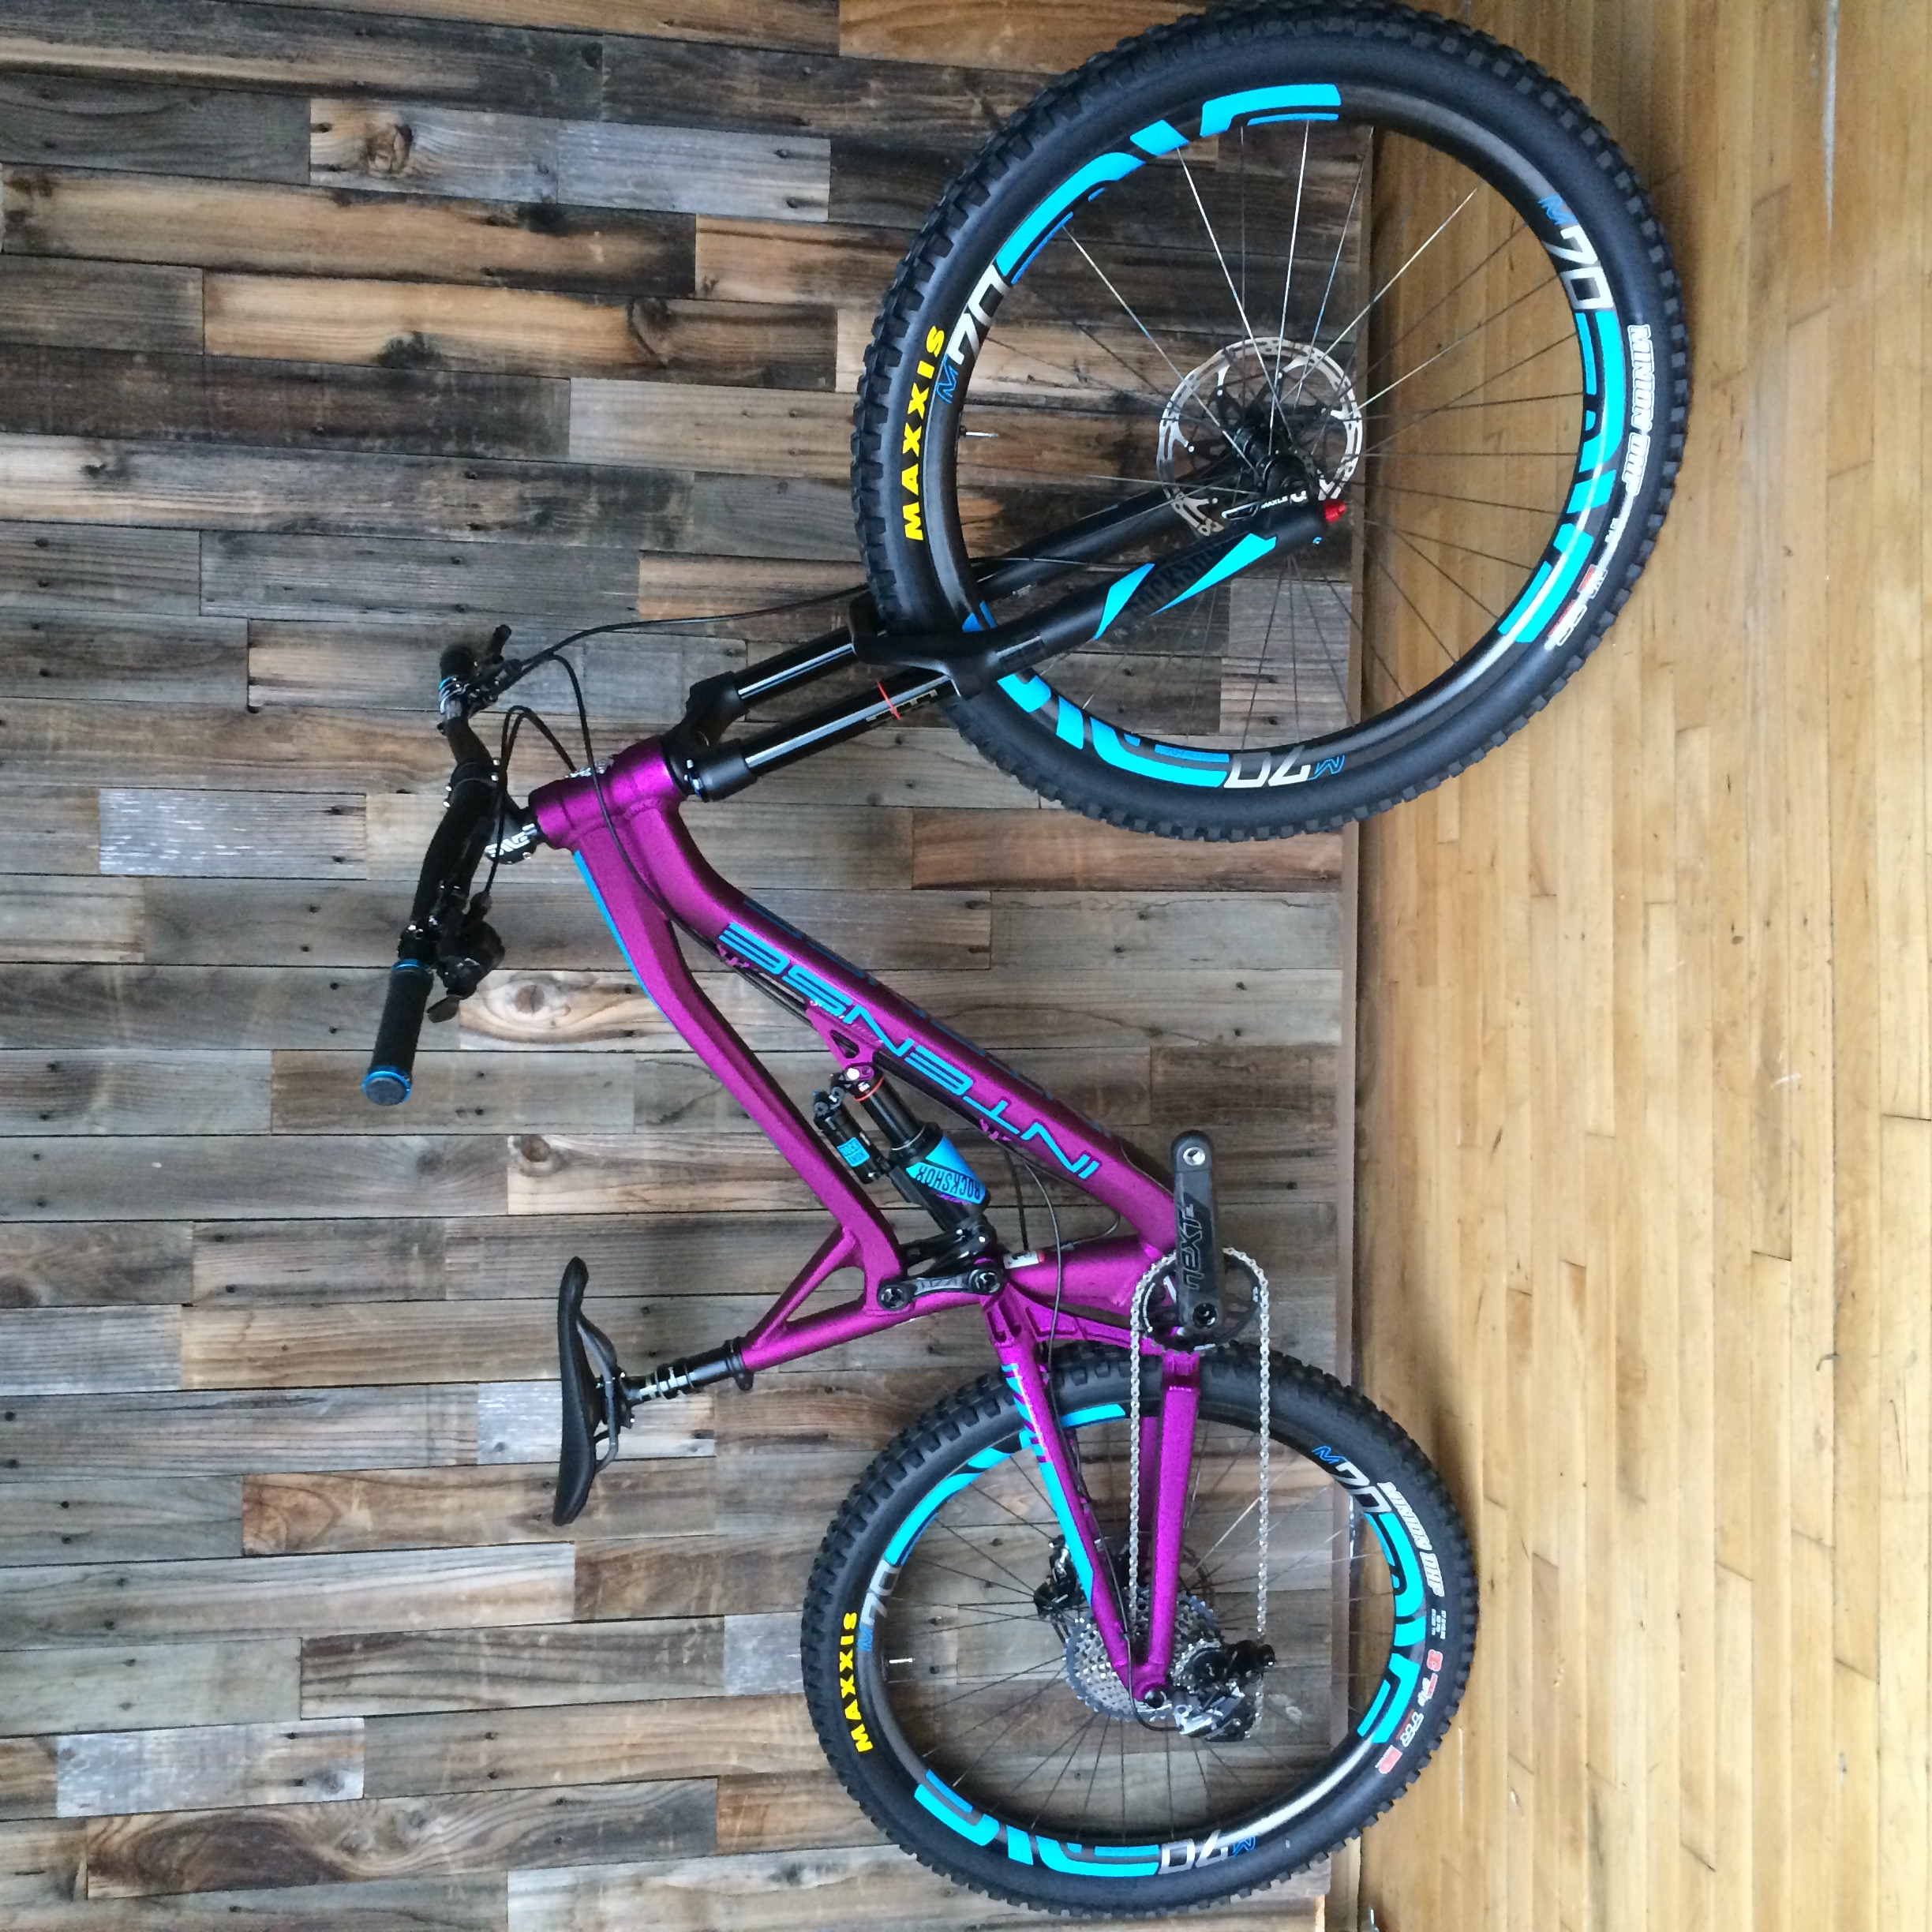 c3 bike shops 2016 intense uzzi custom enduro smasher